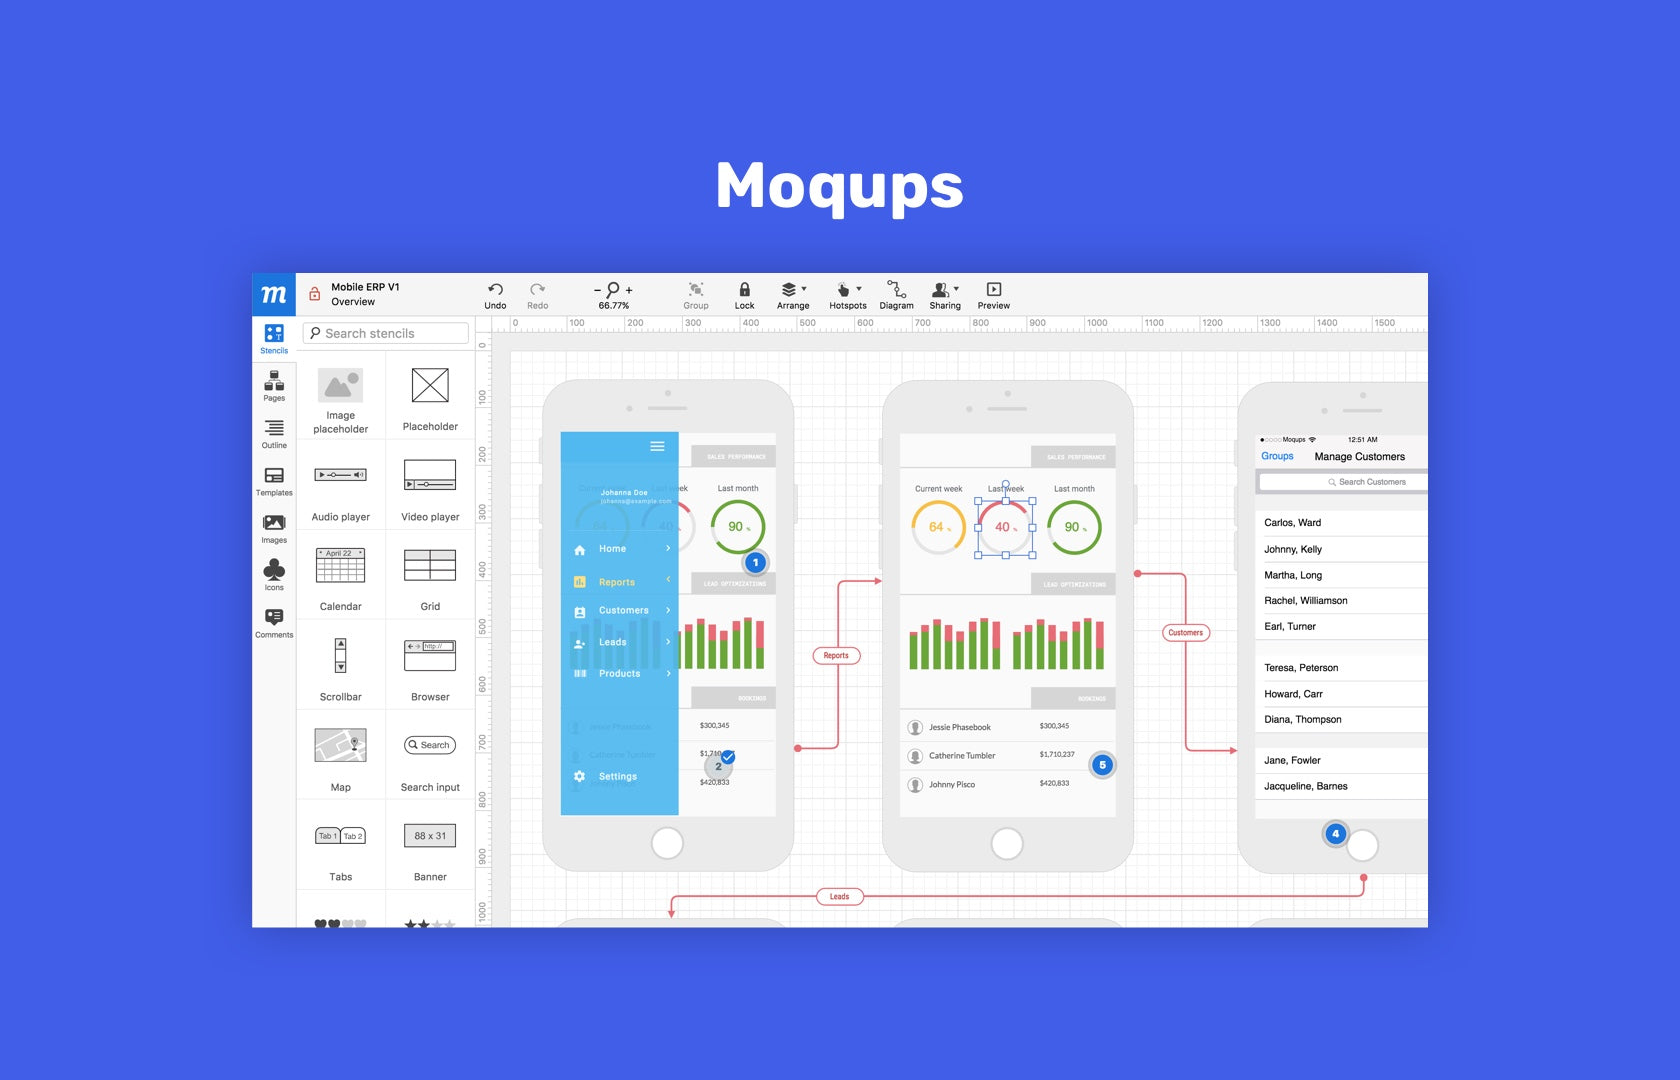 Moqups is an online mockup tool